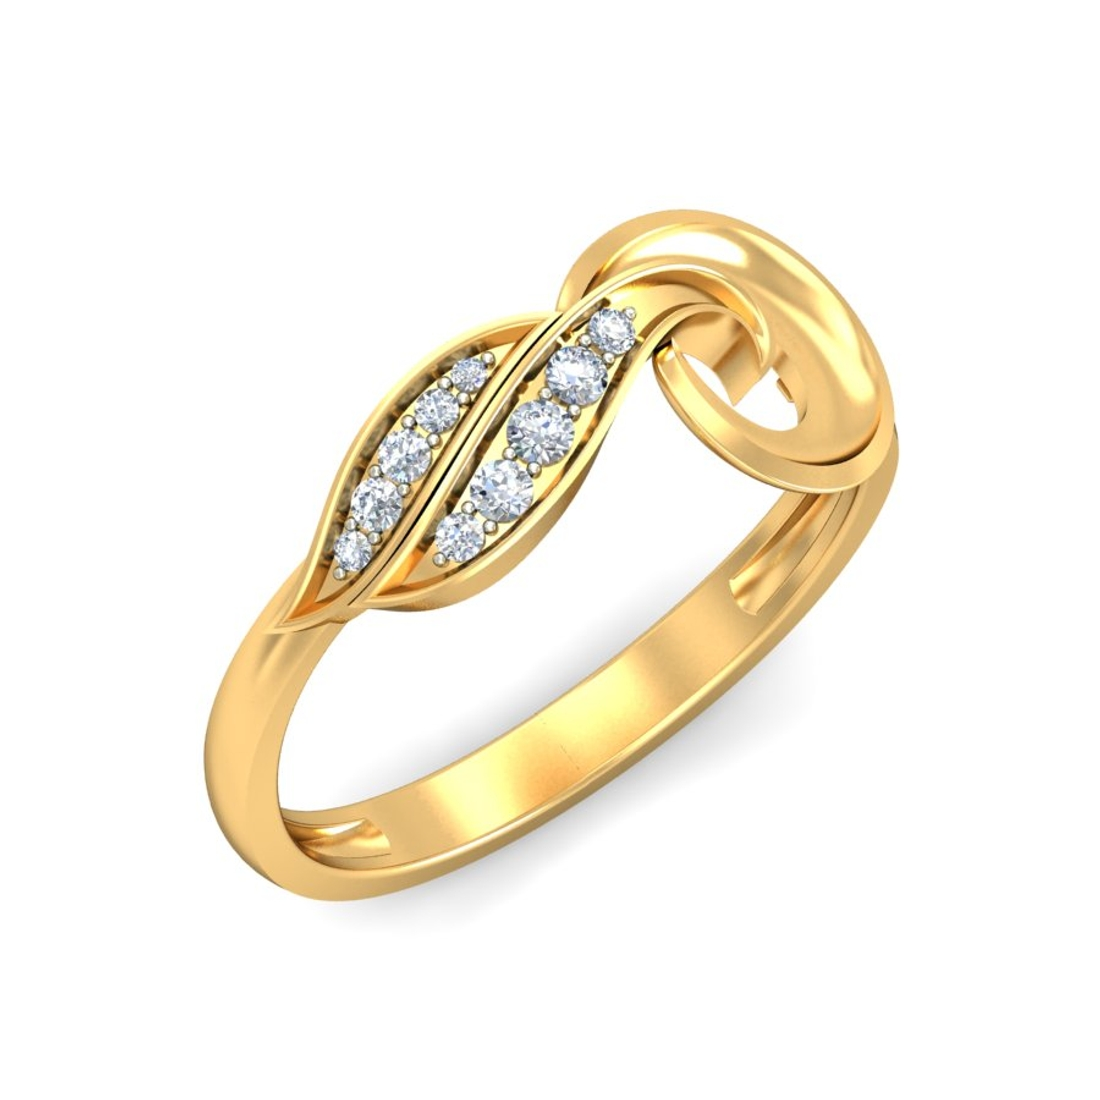 Ornomart's two lined diamond studded Ring